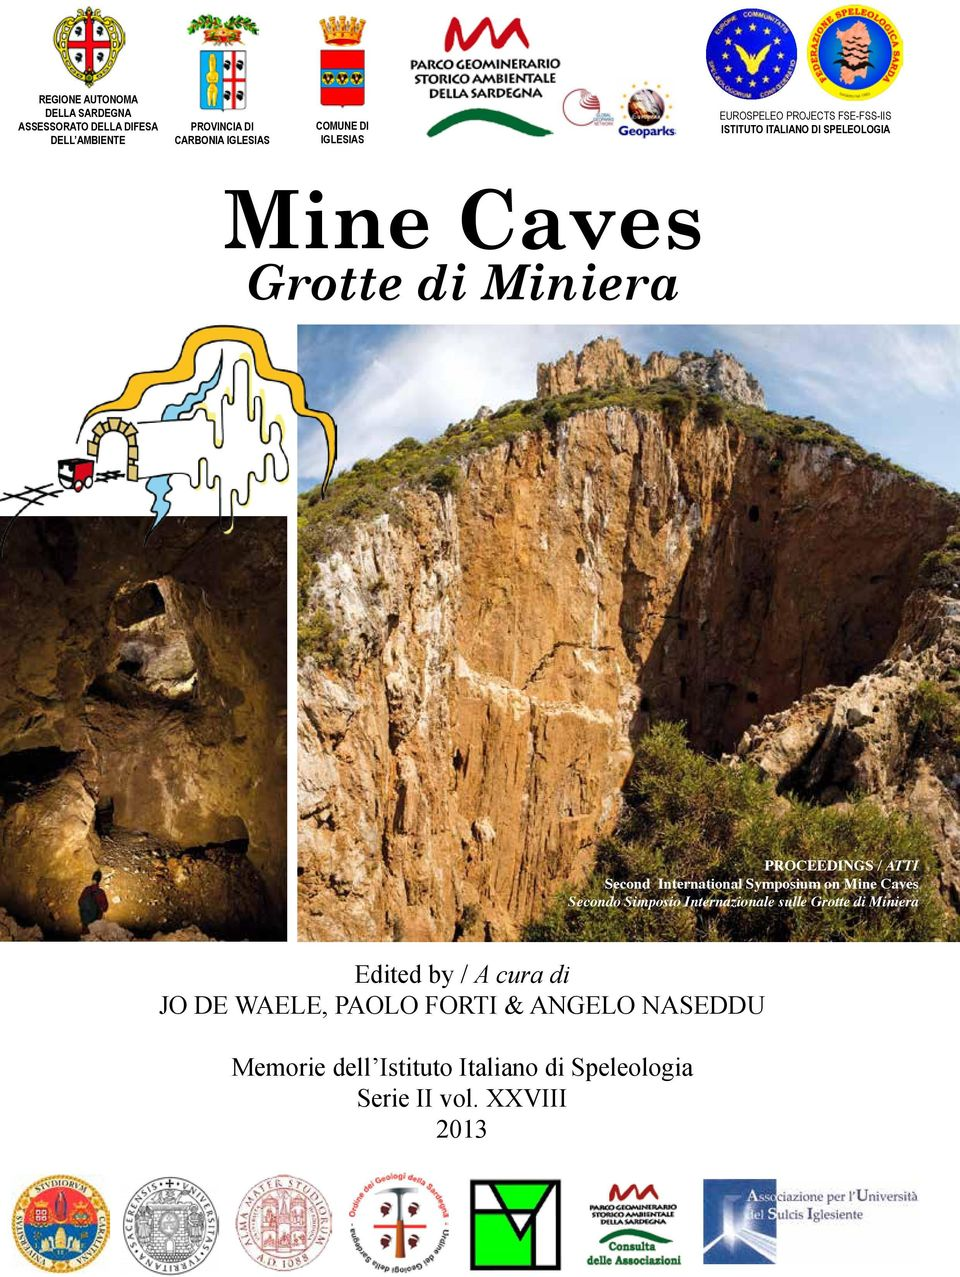 ATTI Second International Symposium on Mine Caves Secondo Simposio Internazionale sulle Grotte di Miniera Edited by /